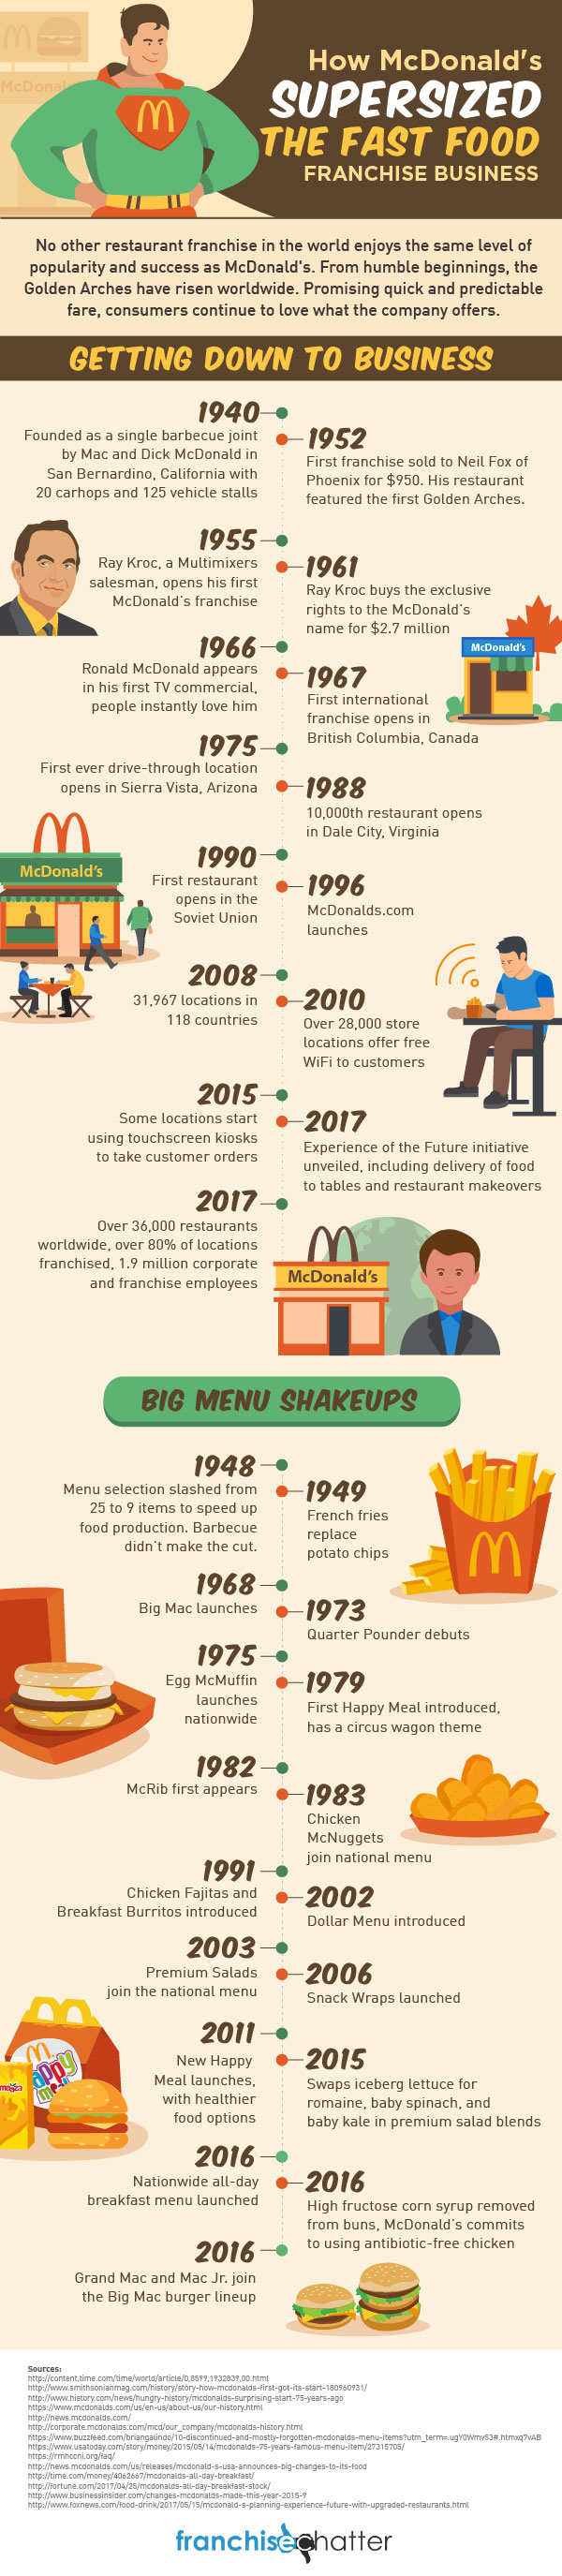 the history of success of the mcdonalds franchising business While mcdonald's was not the first franchise business, it has possibly become the premier example of the business model with roots that trace back to a single drive-in started by a pair of brothers, dick and mac mcdonald, in southern california, mcdonald's has grown to a network of well over 35,000 locations in more than 100 countries.